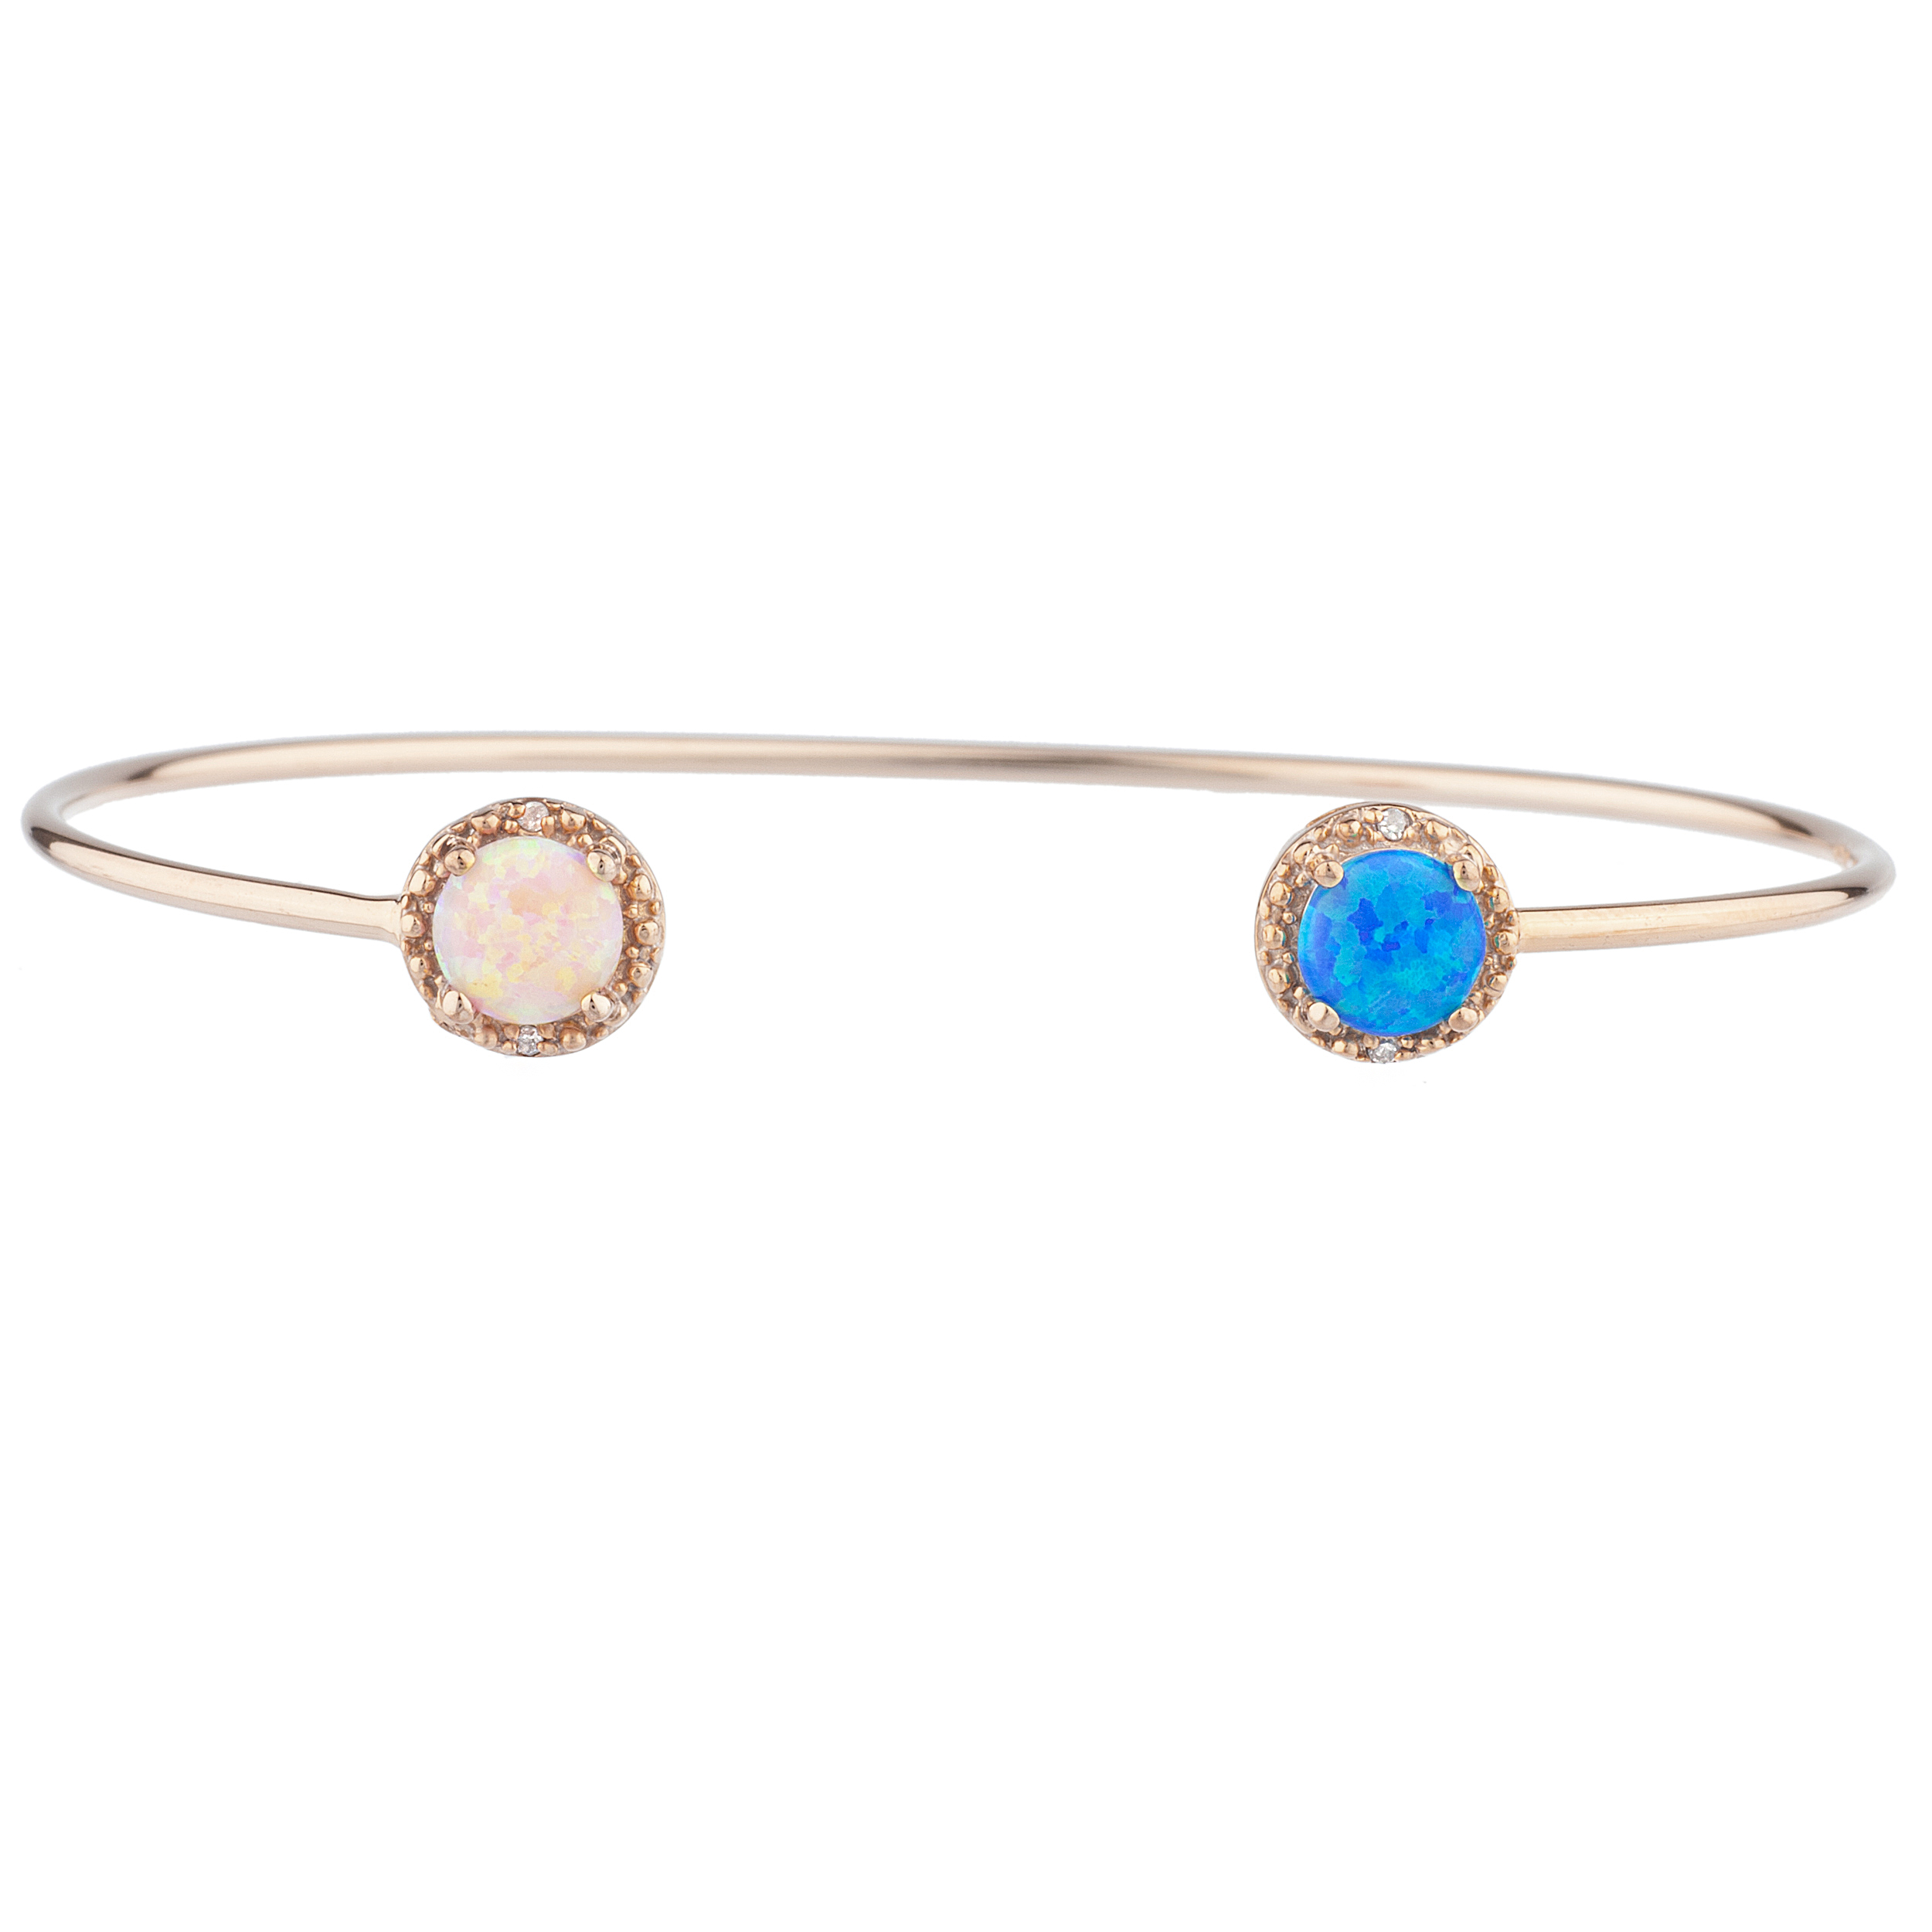 Blue Opal & Pink Opal Diamond Bangle Round Bracelet 14Kt Rose Gold Plated Over .925 Sterling Silver by Elizabeth Jewelry Inc